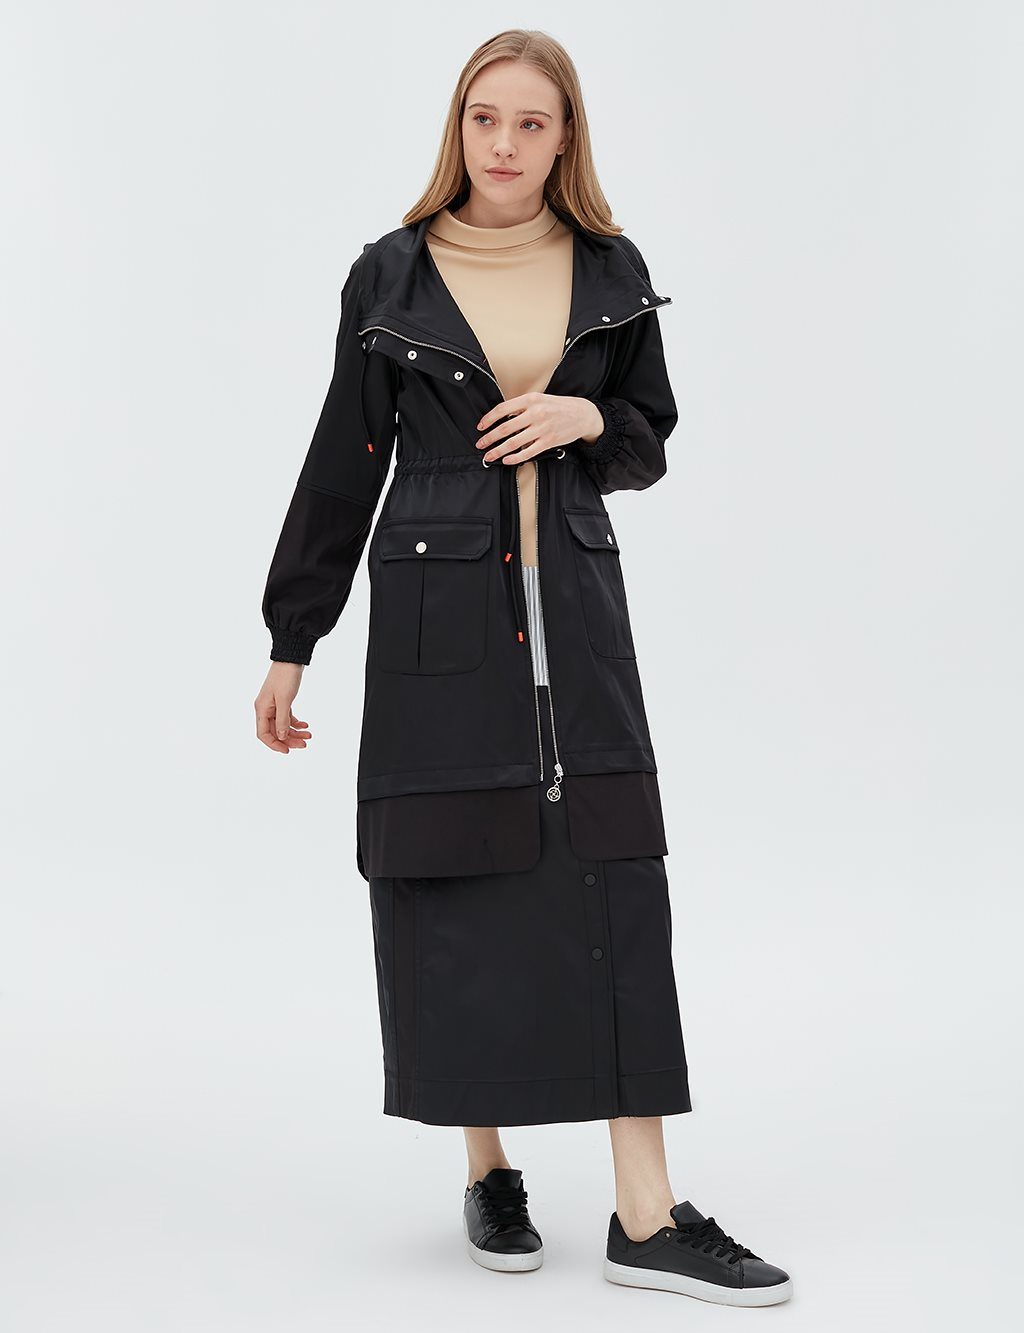 Ruched Coat With Zipper B20 24005 Black